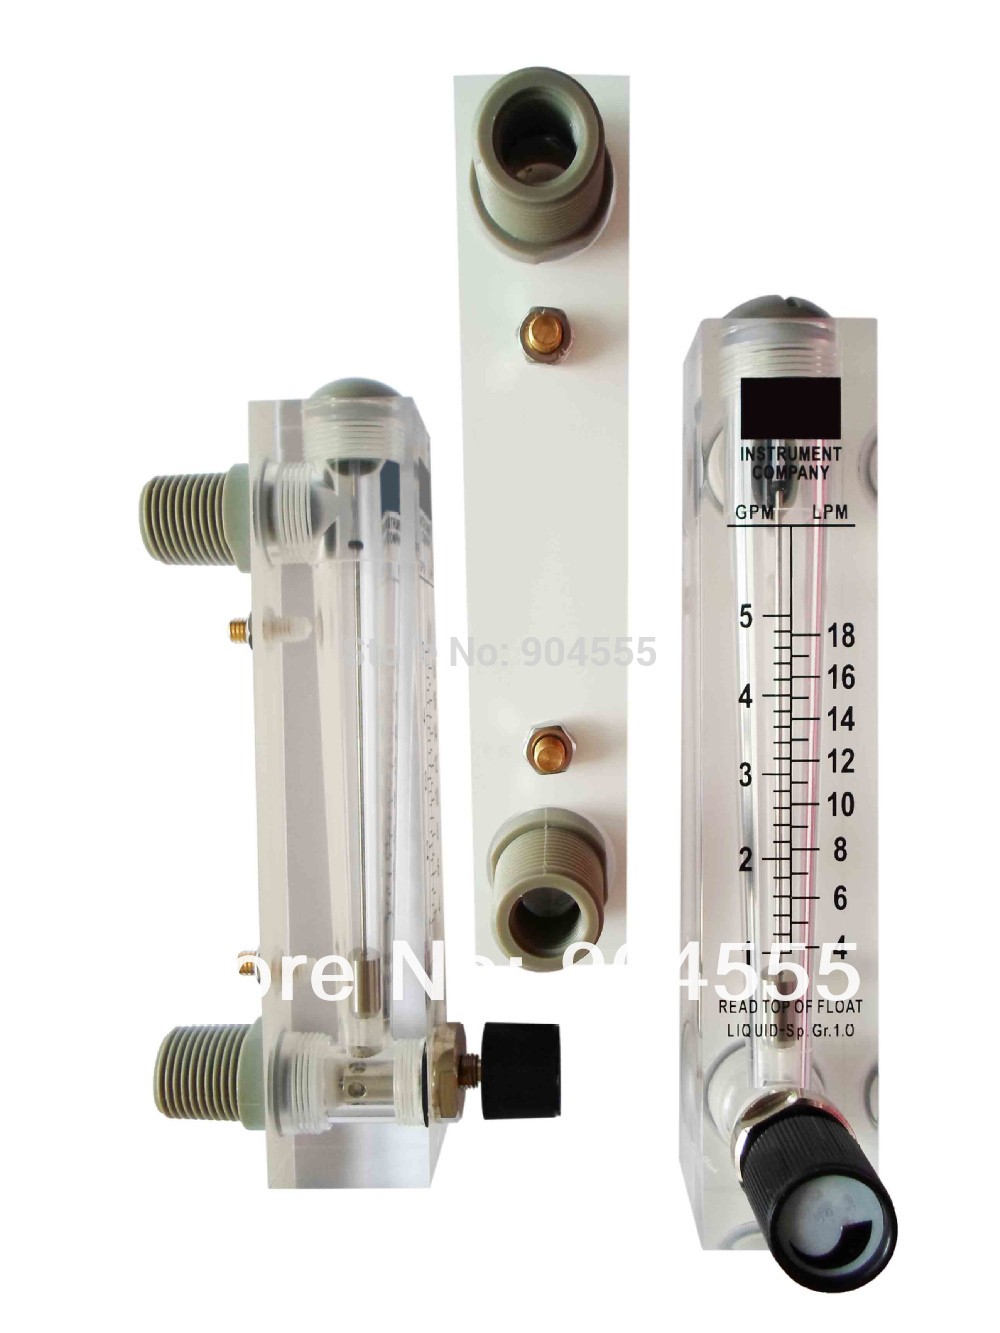 2-18LPM adjustable panel acrylic rotameter flow meter  Water flow meter,Liquid flow controller with adjustable valve